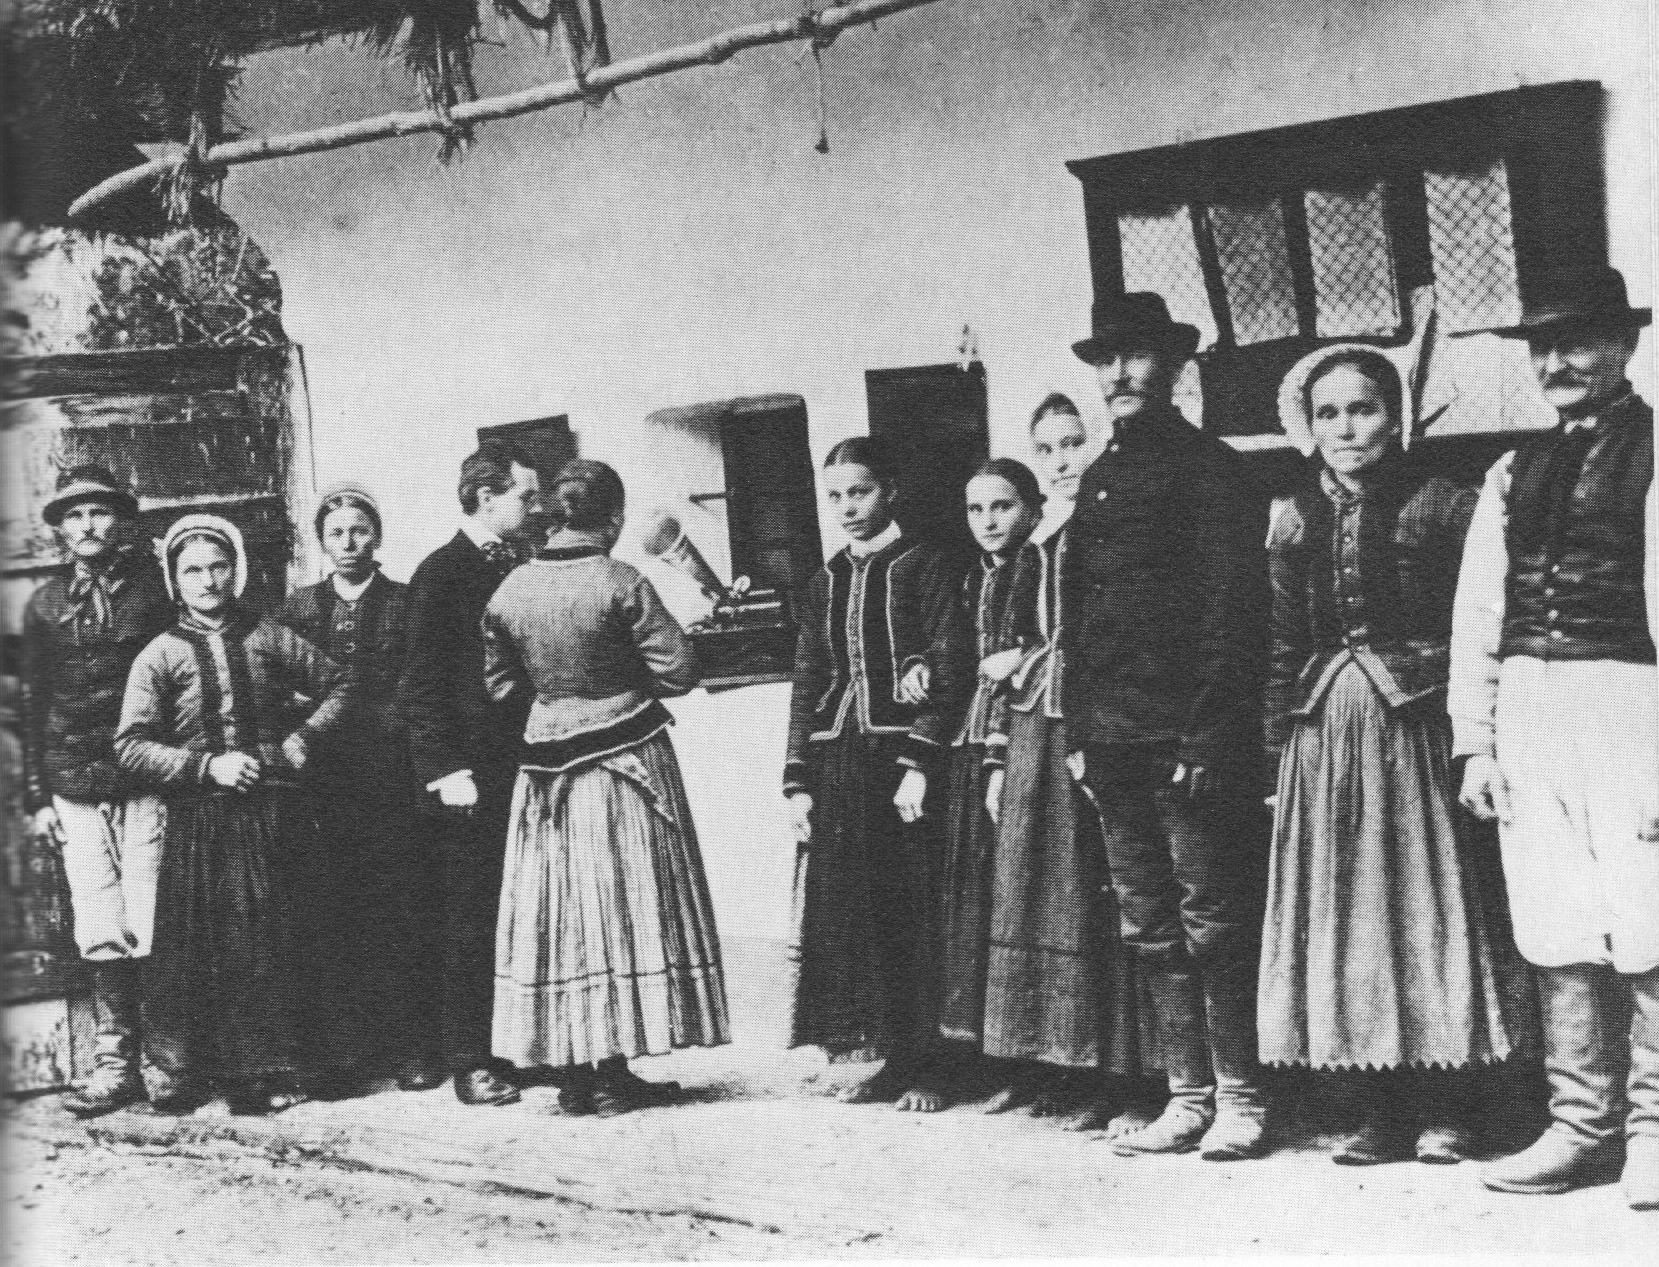 Bela Bartok using a gramaphone to record folk songs sung by Czech peasants , Photographer unknown, Public Domain